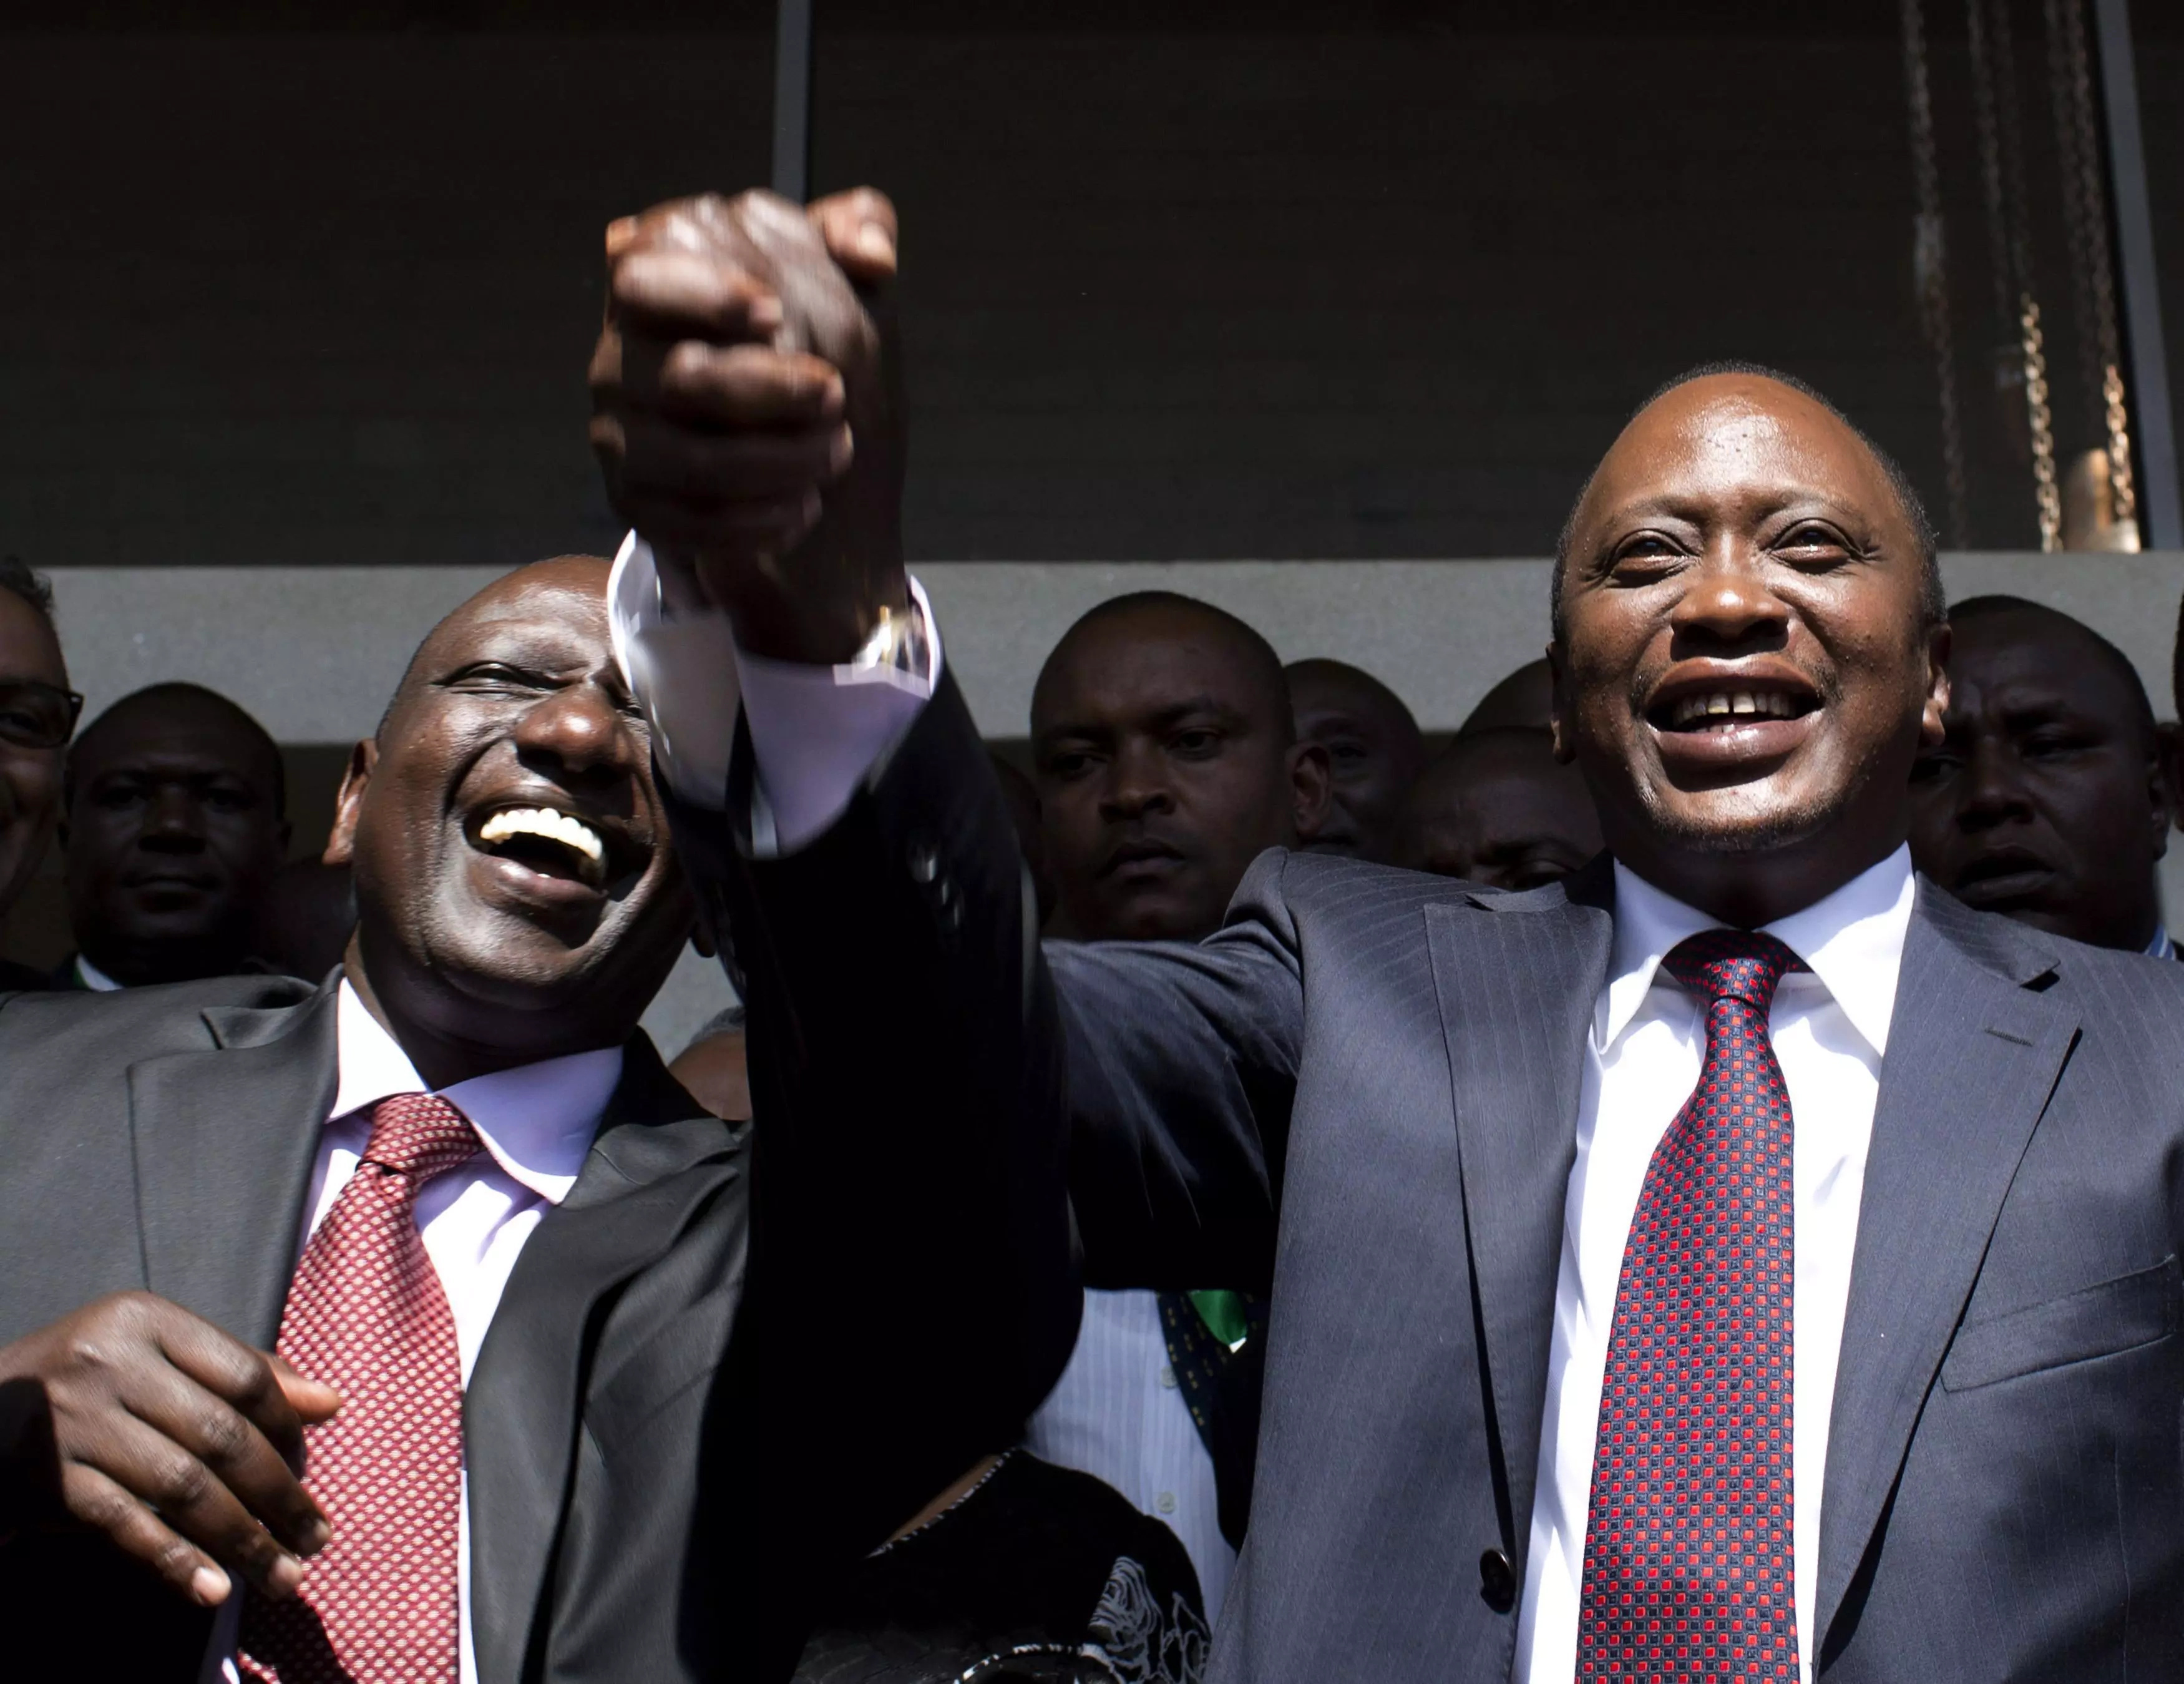 Kwale leaders tell Uhuru Kenyatta not to waste his time